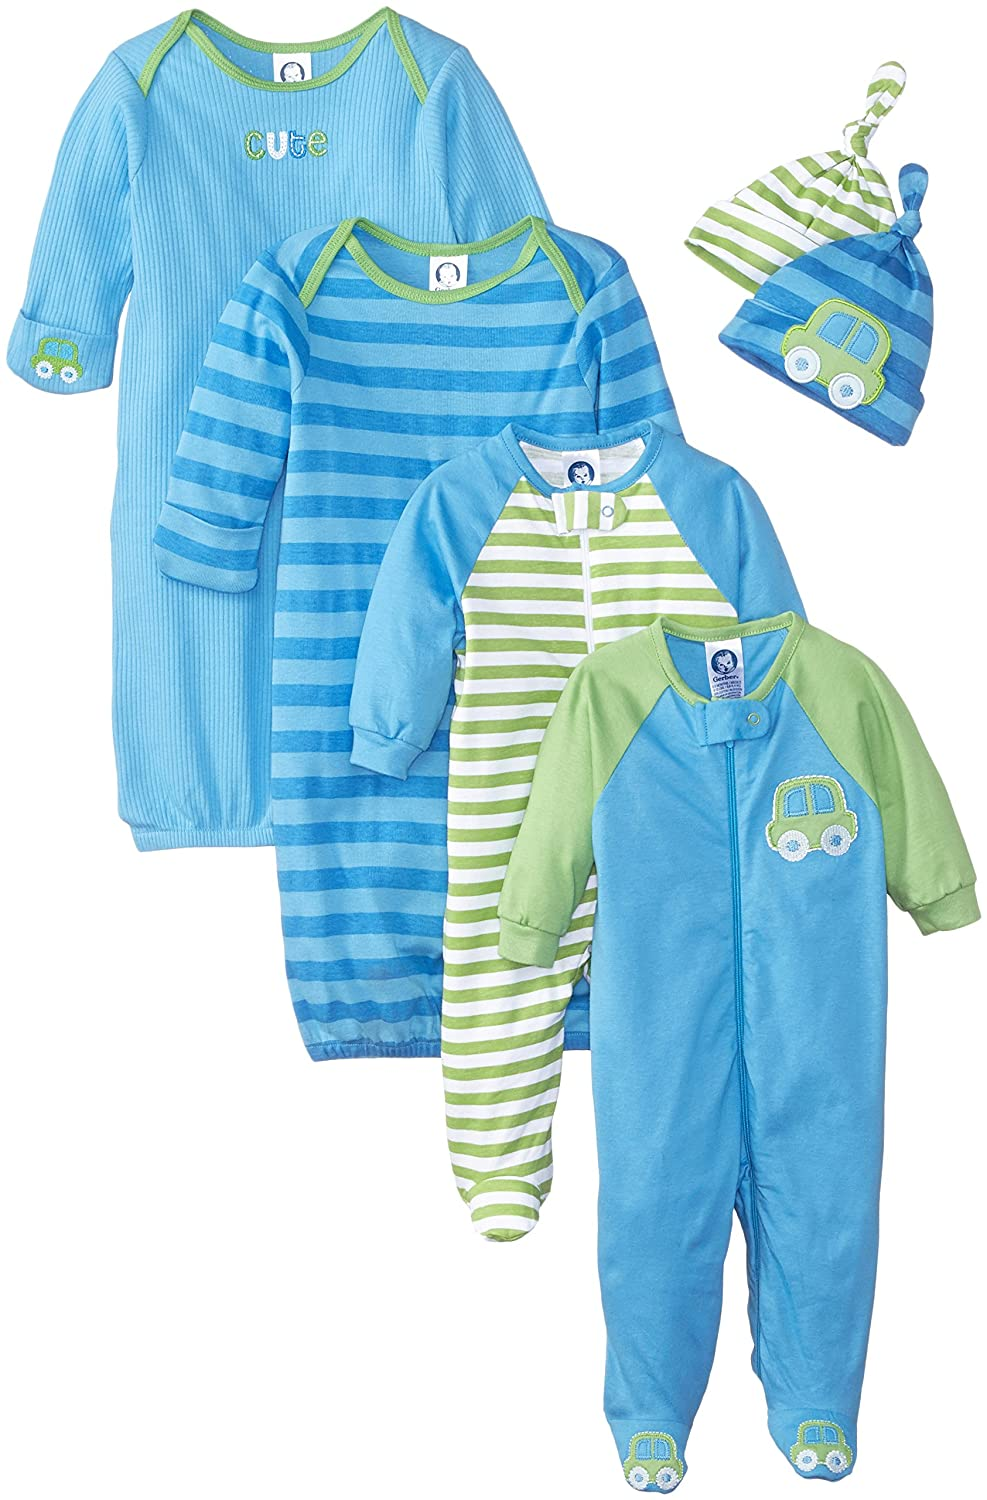 Gerber Baby Boys 6 Piece Gown, Cap (0-6M), and Sleep'n Play (0-3M) Gift Set, Car and Stripe, Newborn Gerber Children' s Apparel 84948616AB15AST